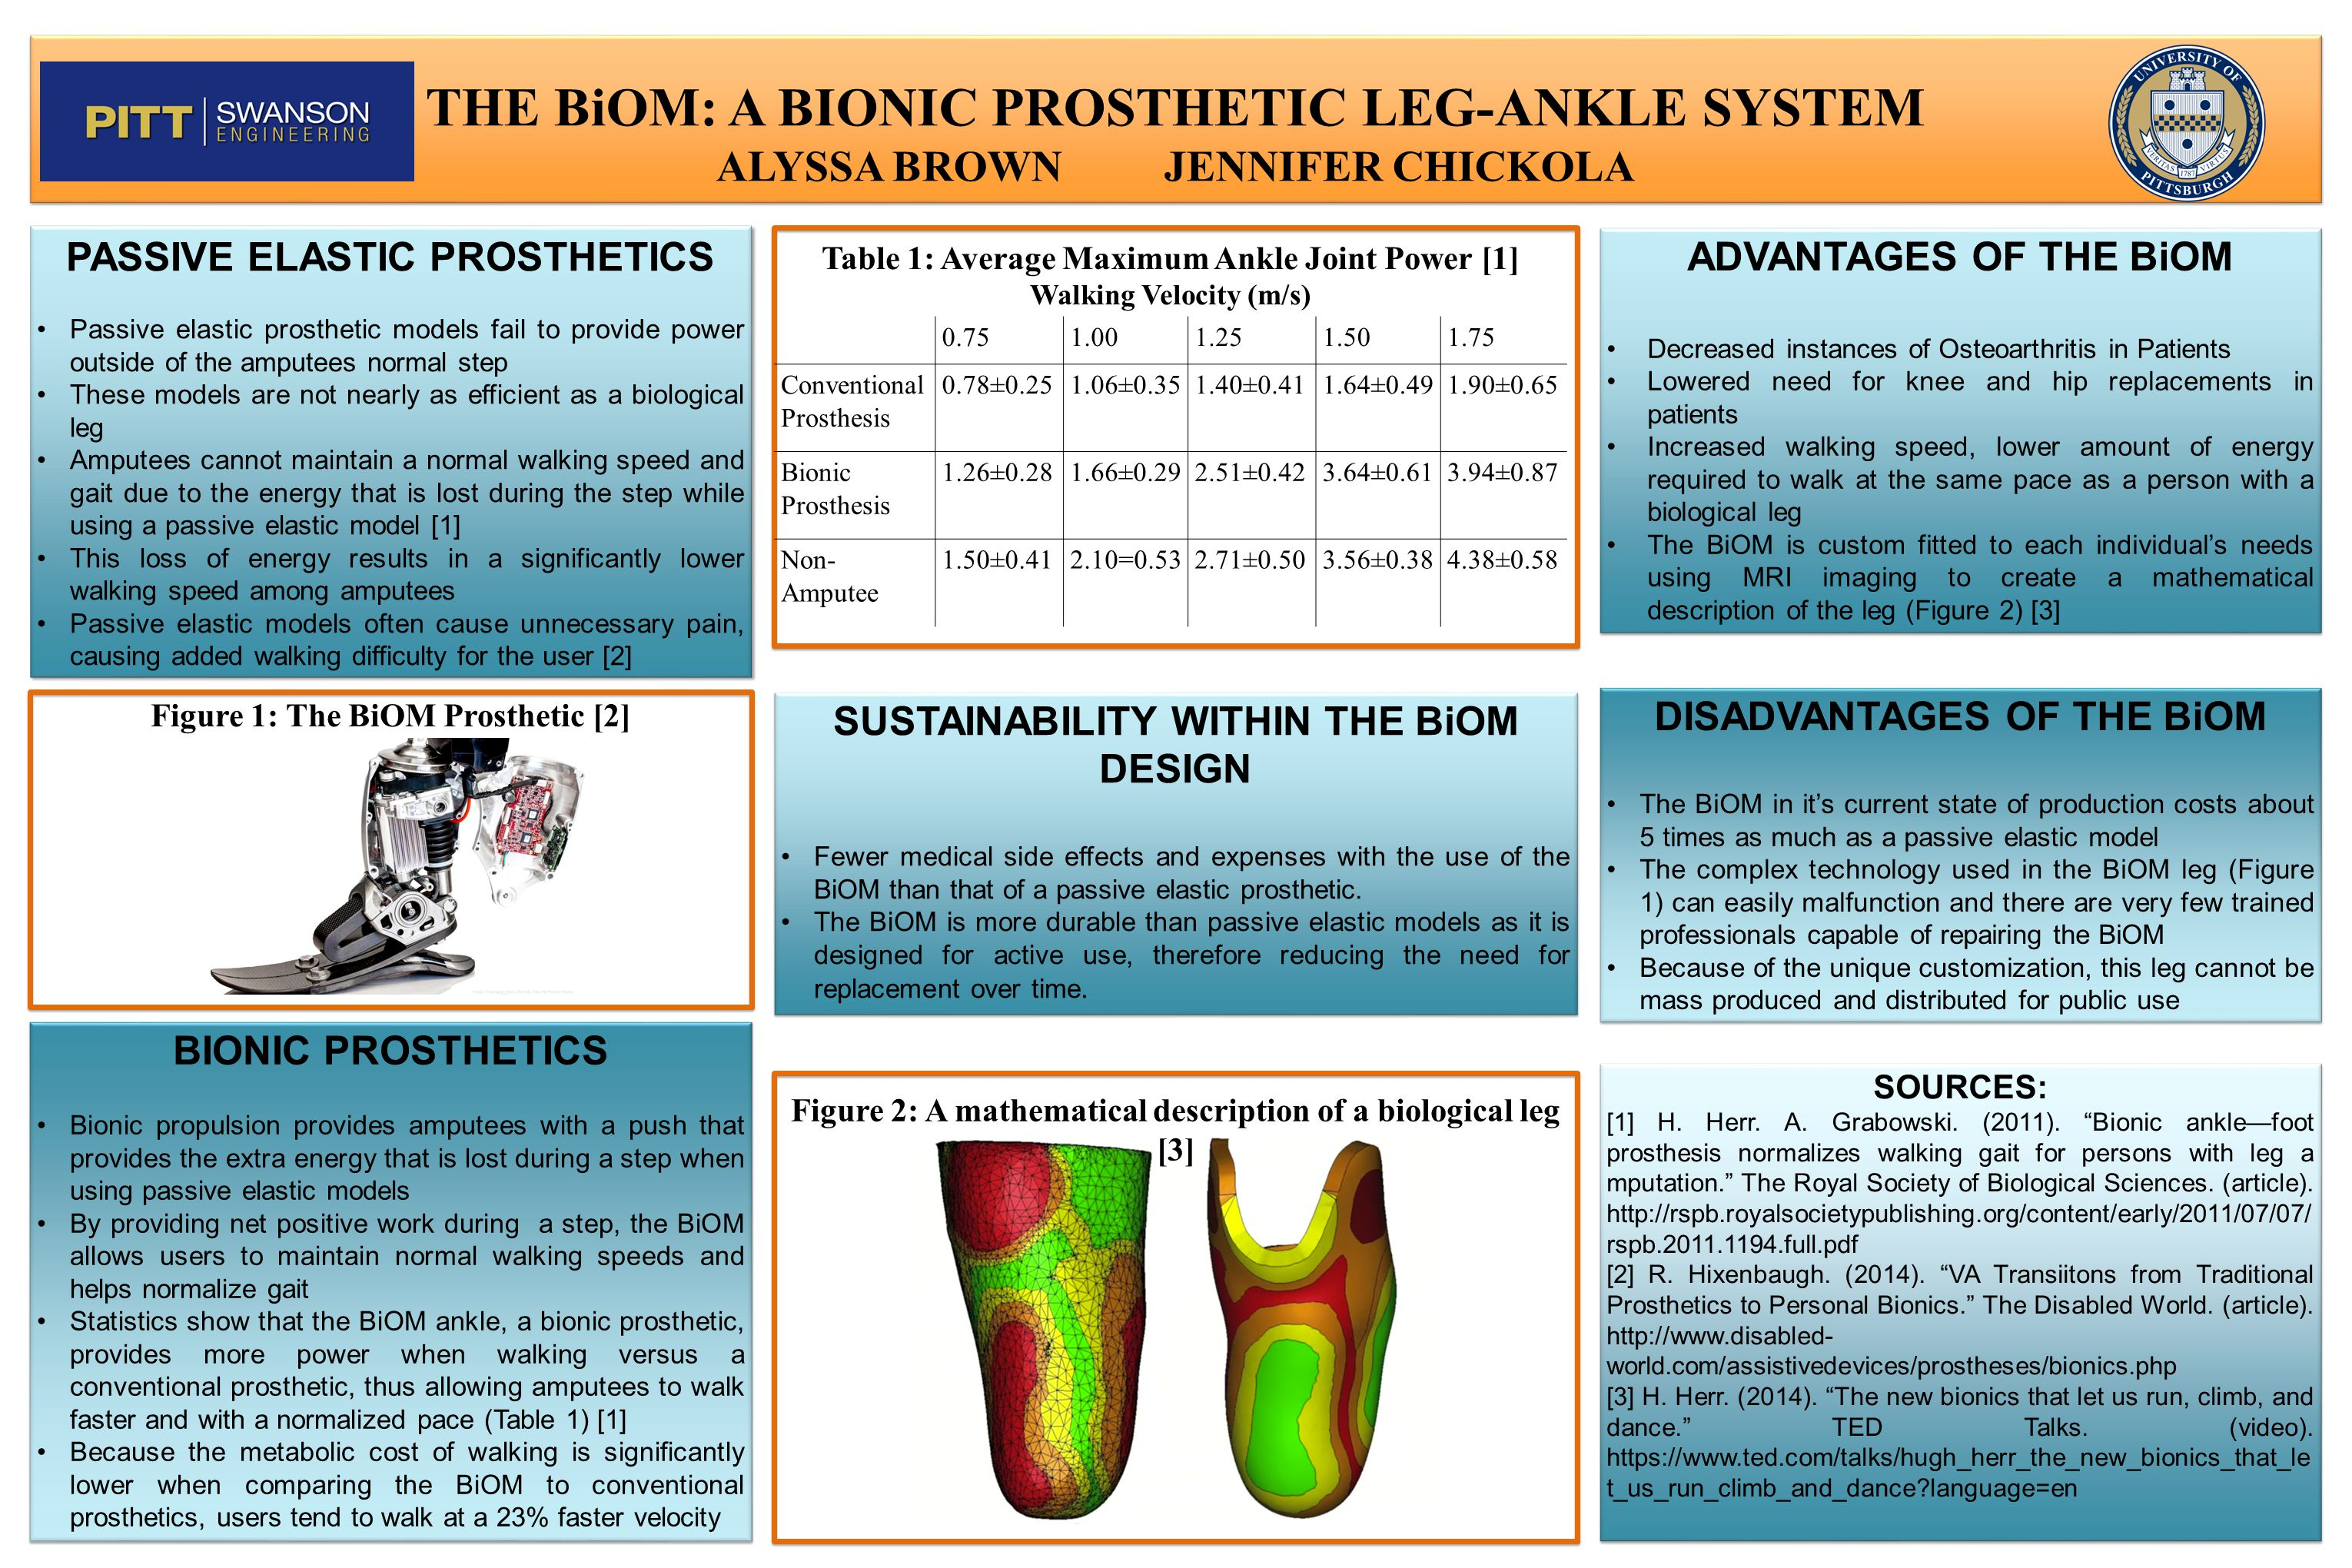 THE BiOM: A BIONIC PROSTHETIC LEG-ANKLE SYSTEM ALYSSA BROWNJENNIFER CHICKOLA 0.751.001.251.501.75 Conventional Prosthesis 0.78±0.251.06±0.351.40±0.411